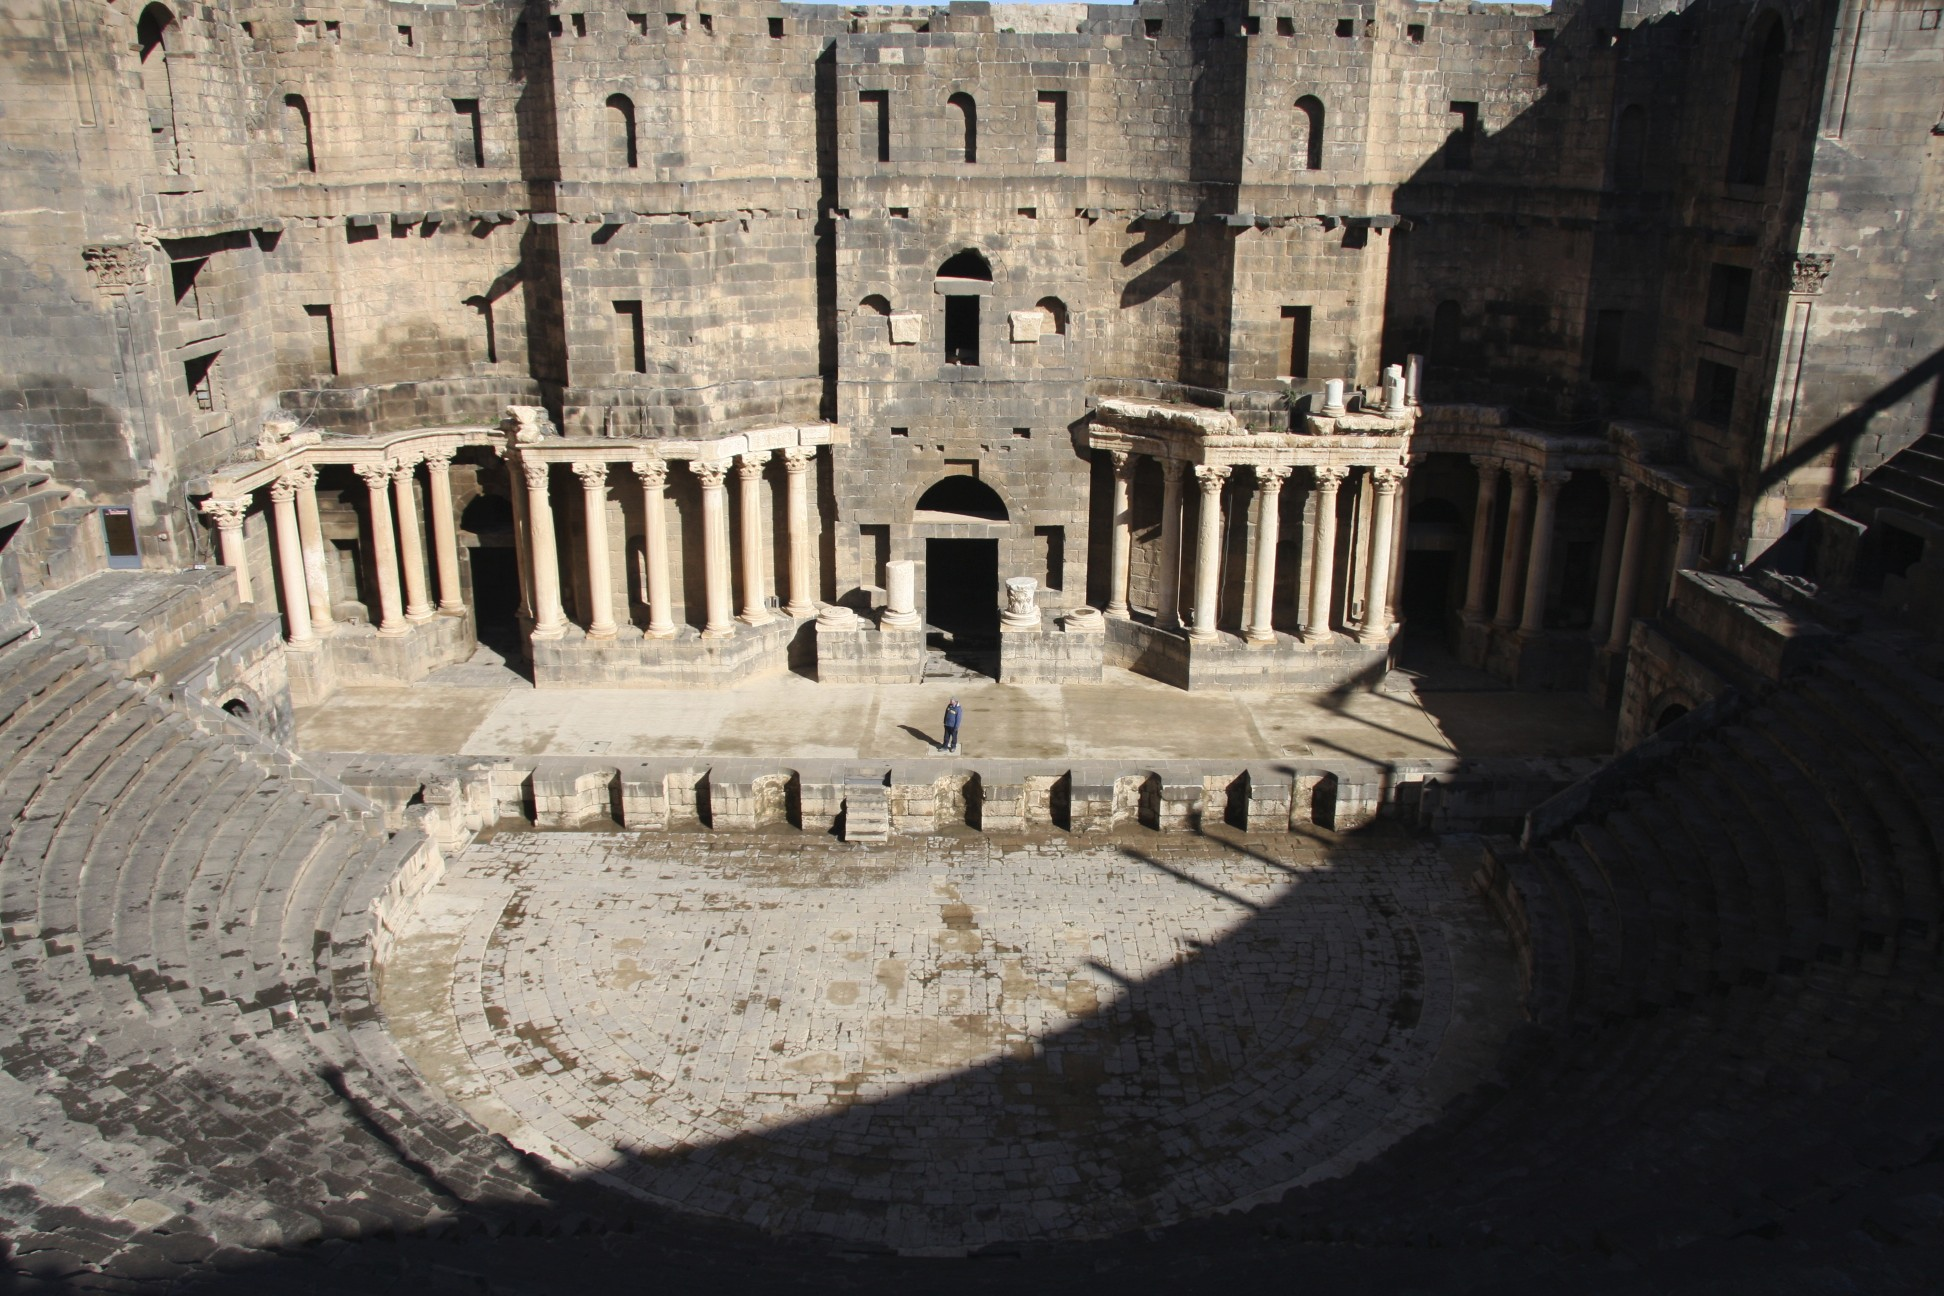 The Roman theatre built in year 150 AD